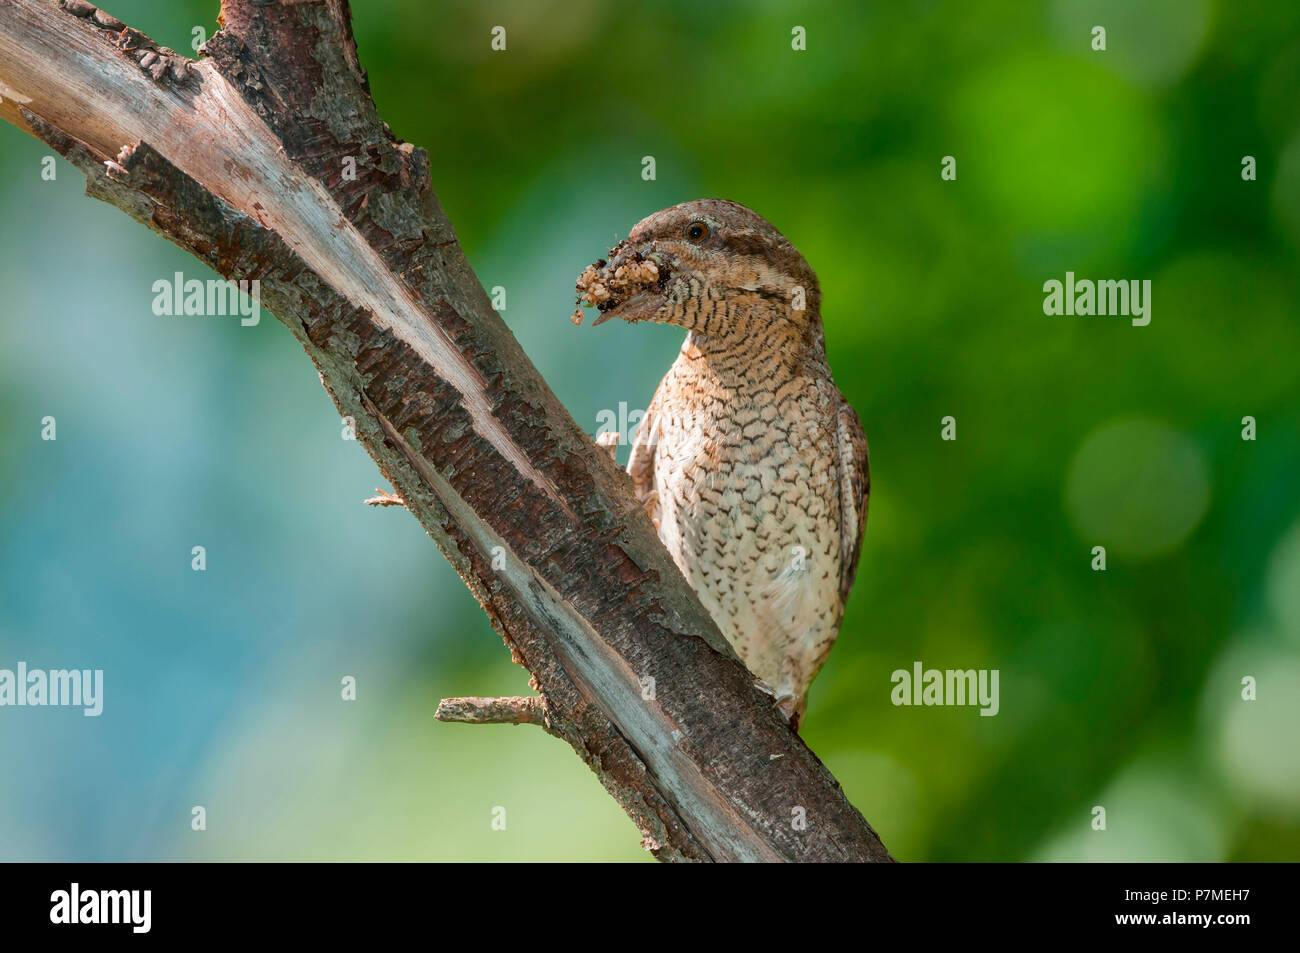 Eurasian Wryneck on the branch with cue, Trentino Alto-Adige, Italy - Stock Image